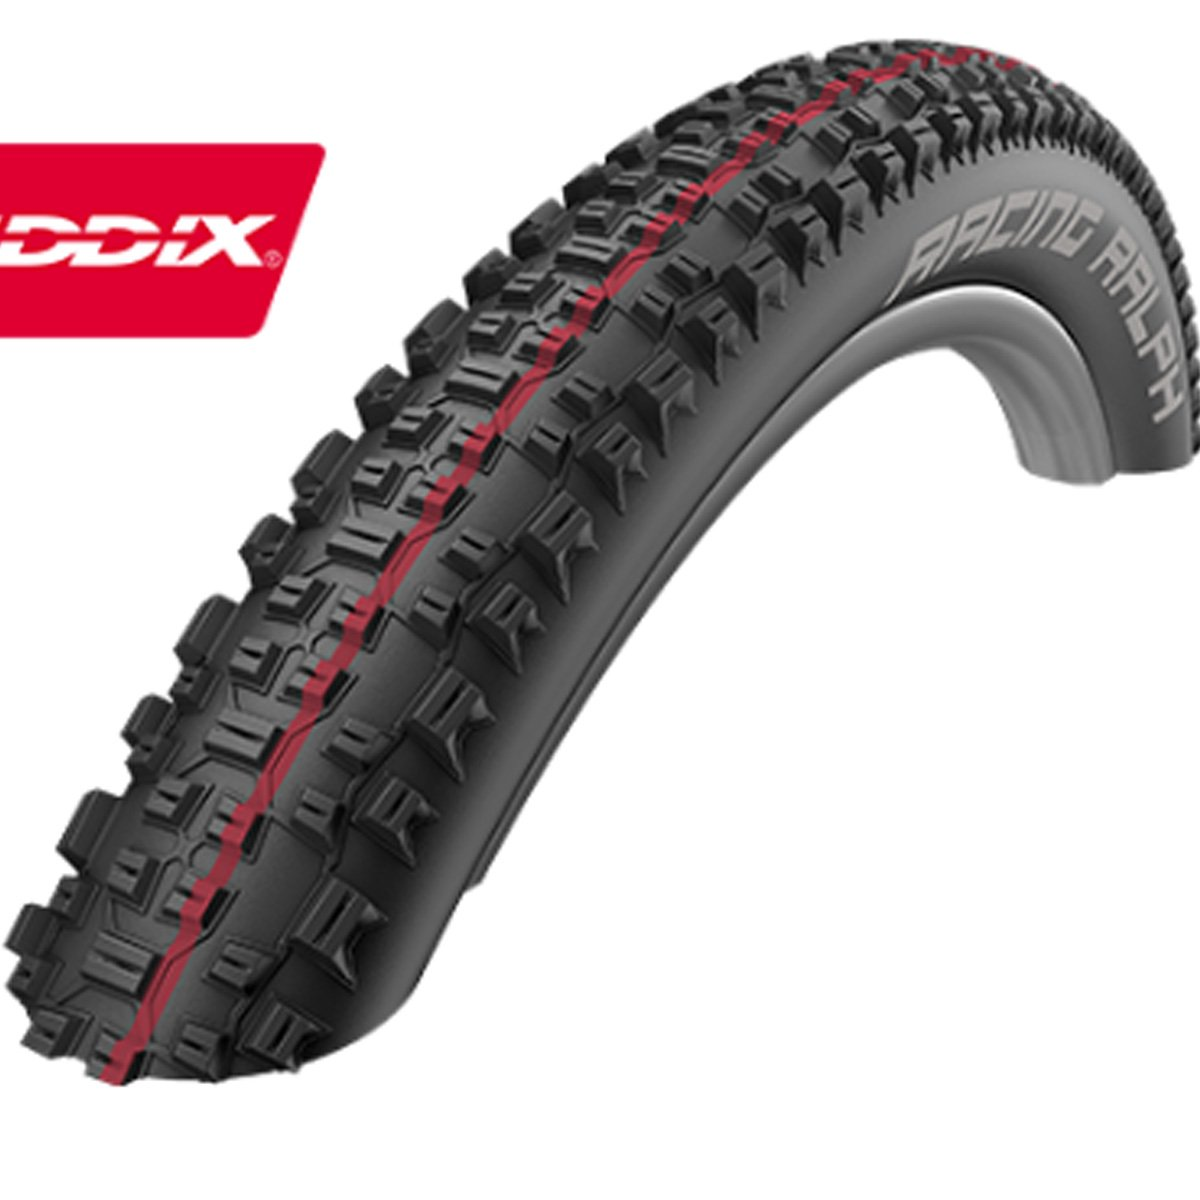 Schwalbe Racing Ralph Addix複合MTBタイヤ B071FMWRS1 29 X 2.25 LiteSkin Speed